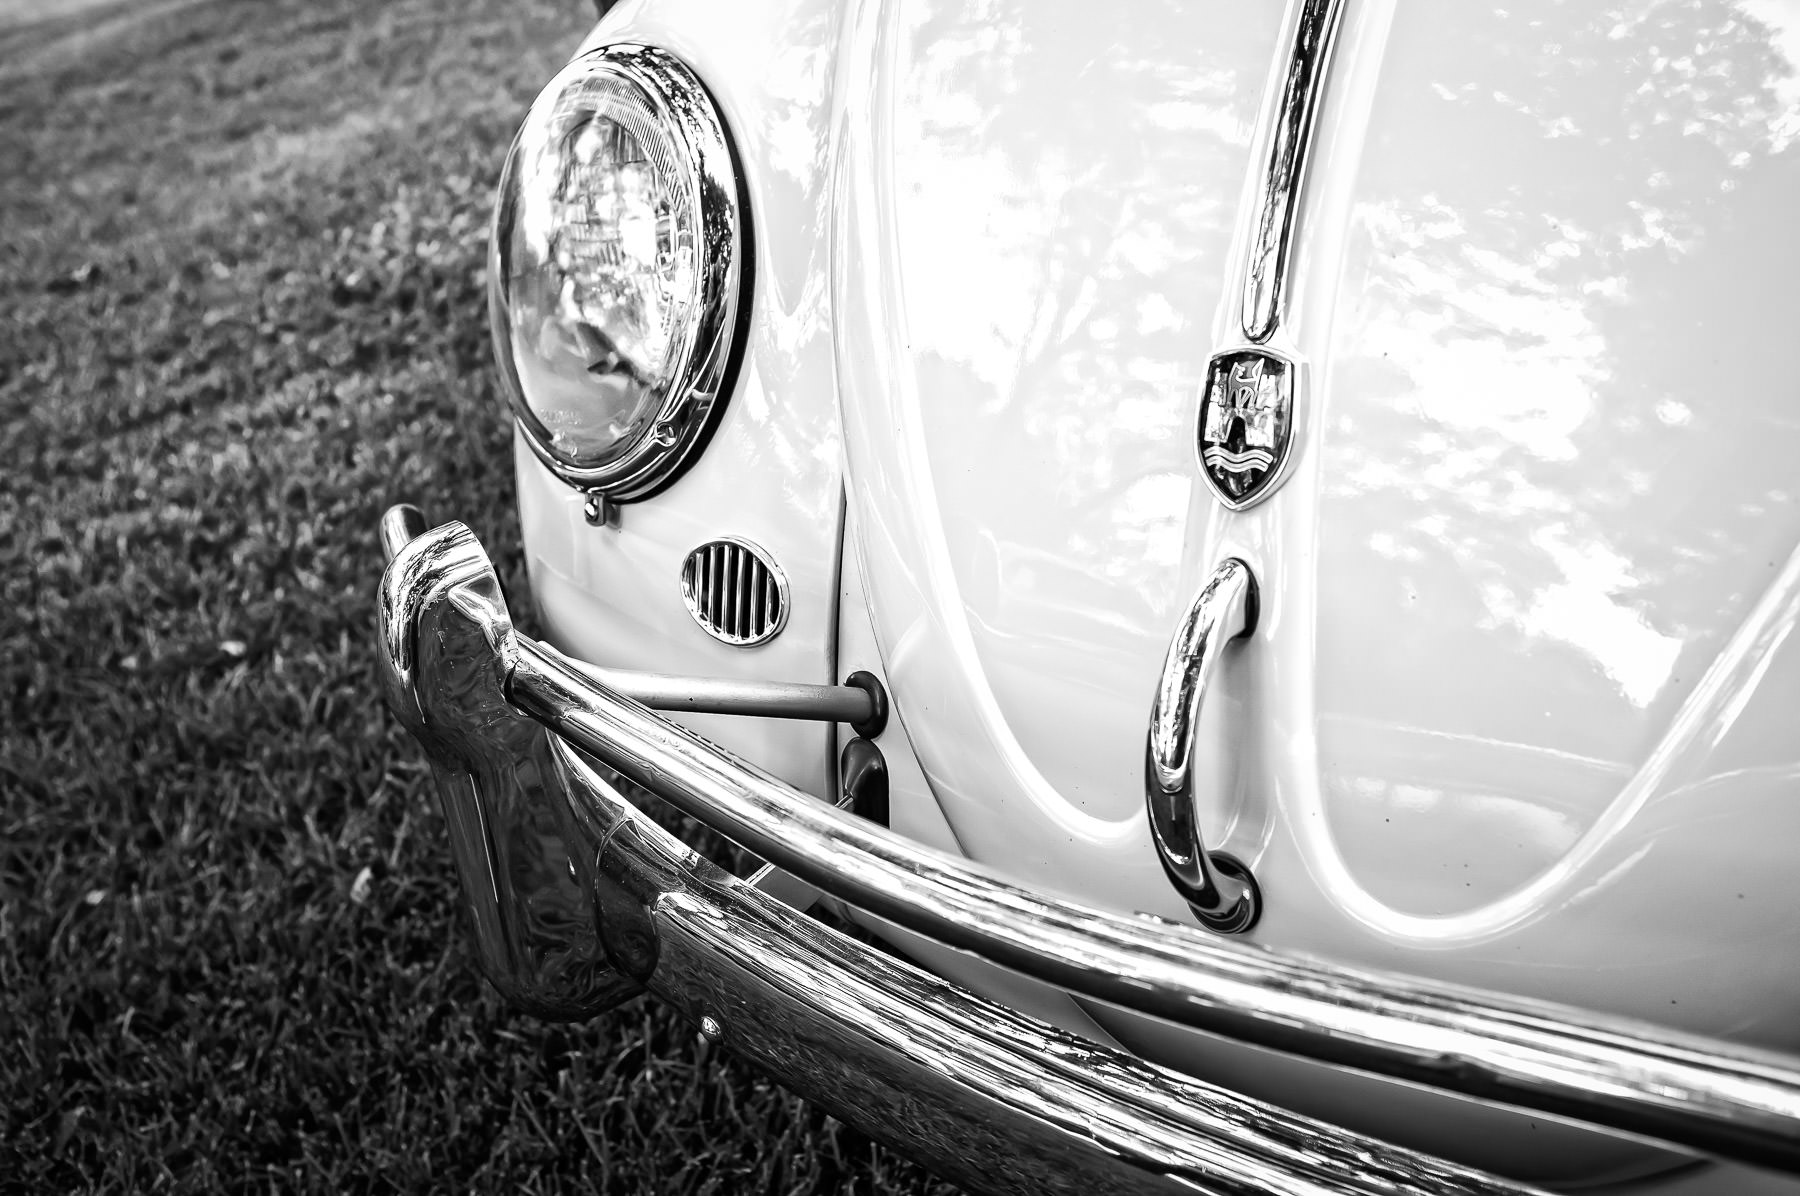 The right headlight of a classic Volkswagen Beetle at Dallas' Autos in the Park car show at Cooper Aerobics Center.